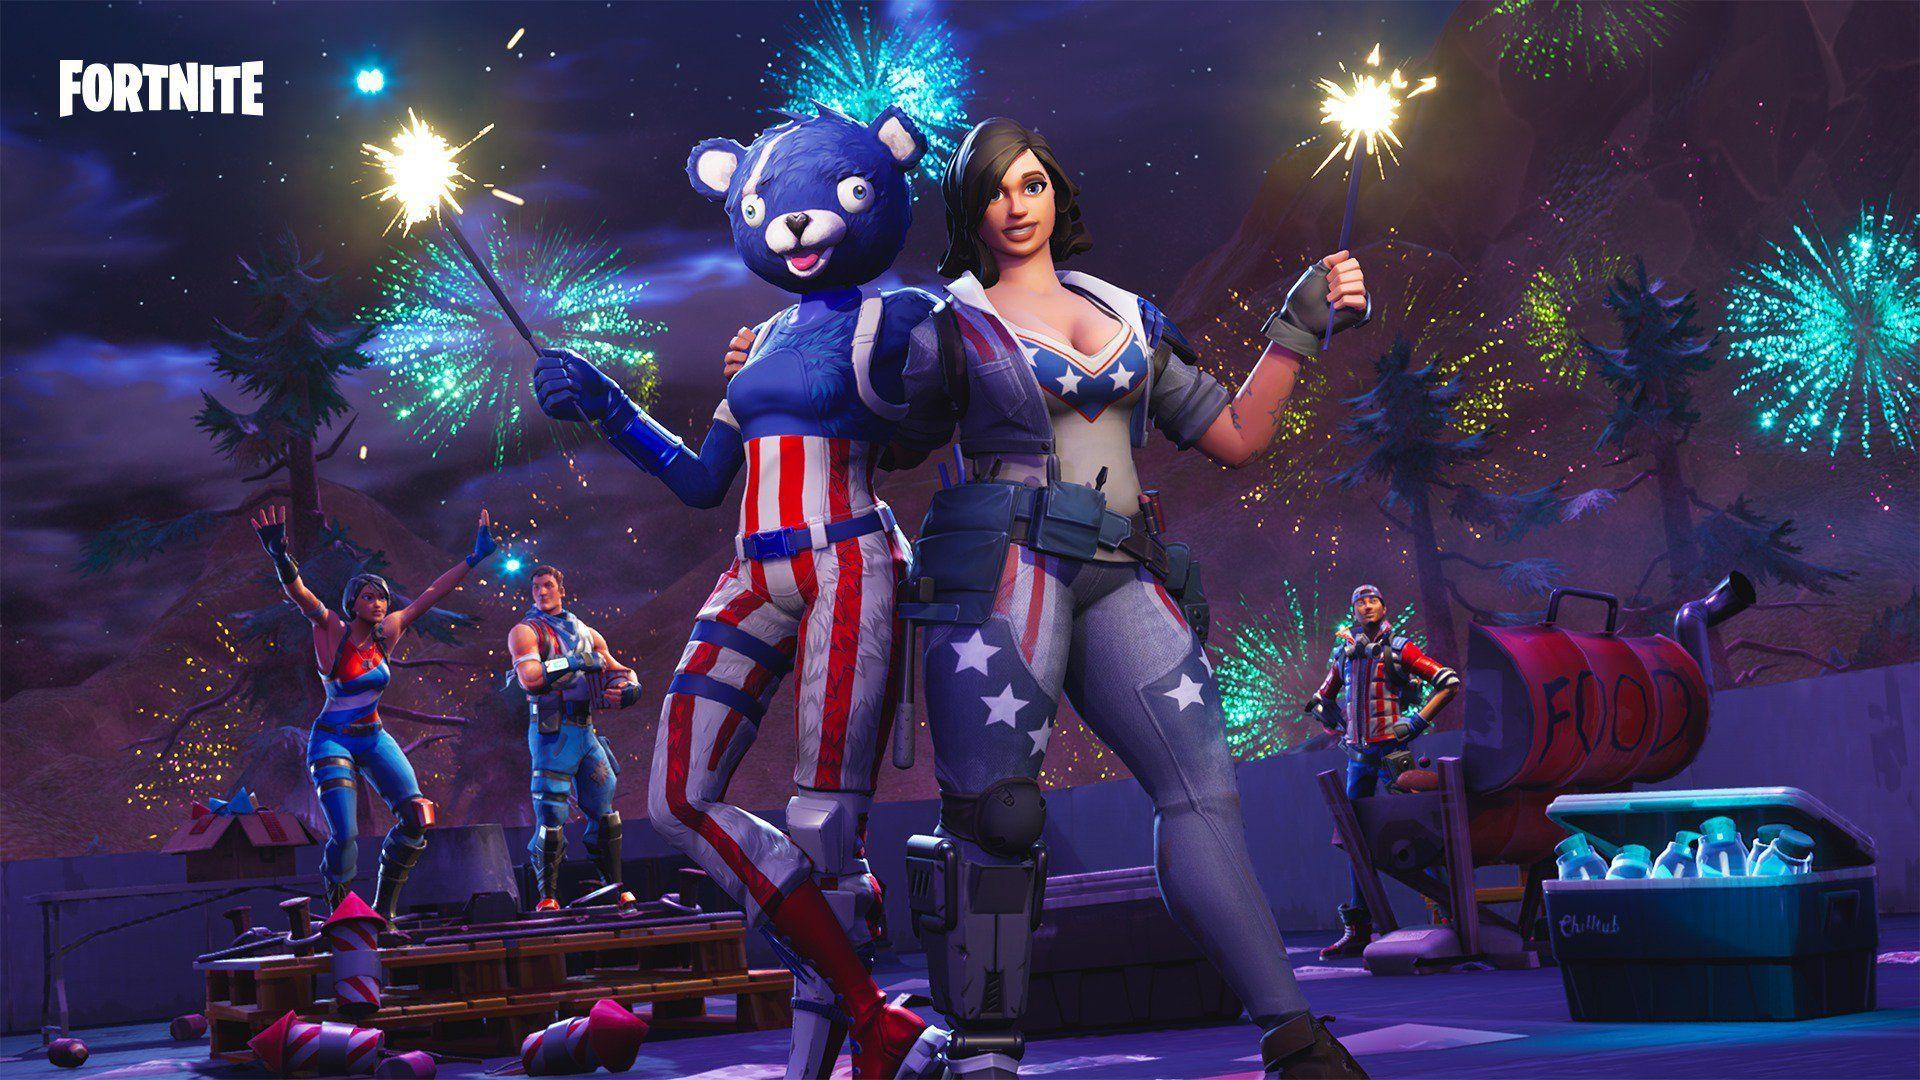 Fortnite Fireworks Team Leader | Outfits - Fortnite Skins